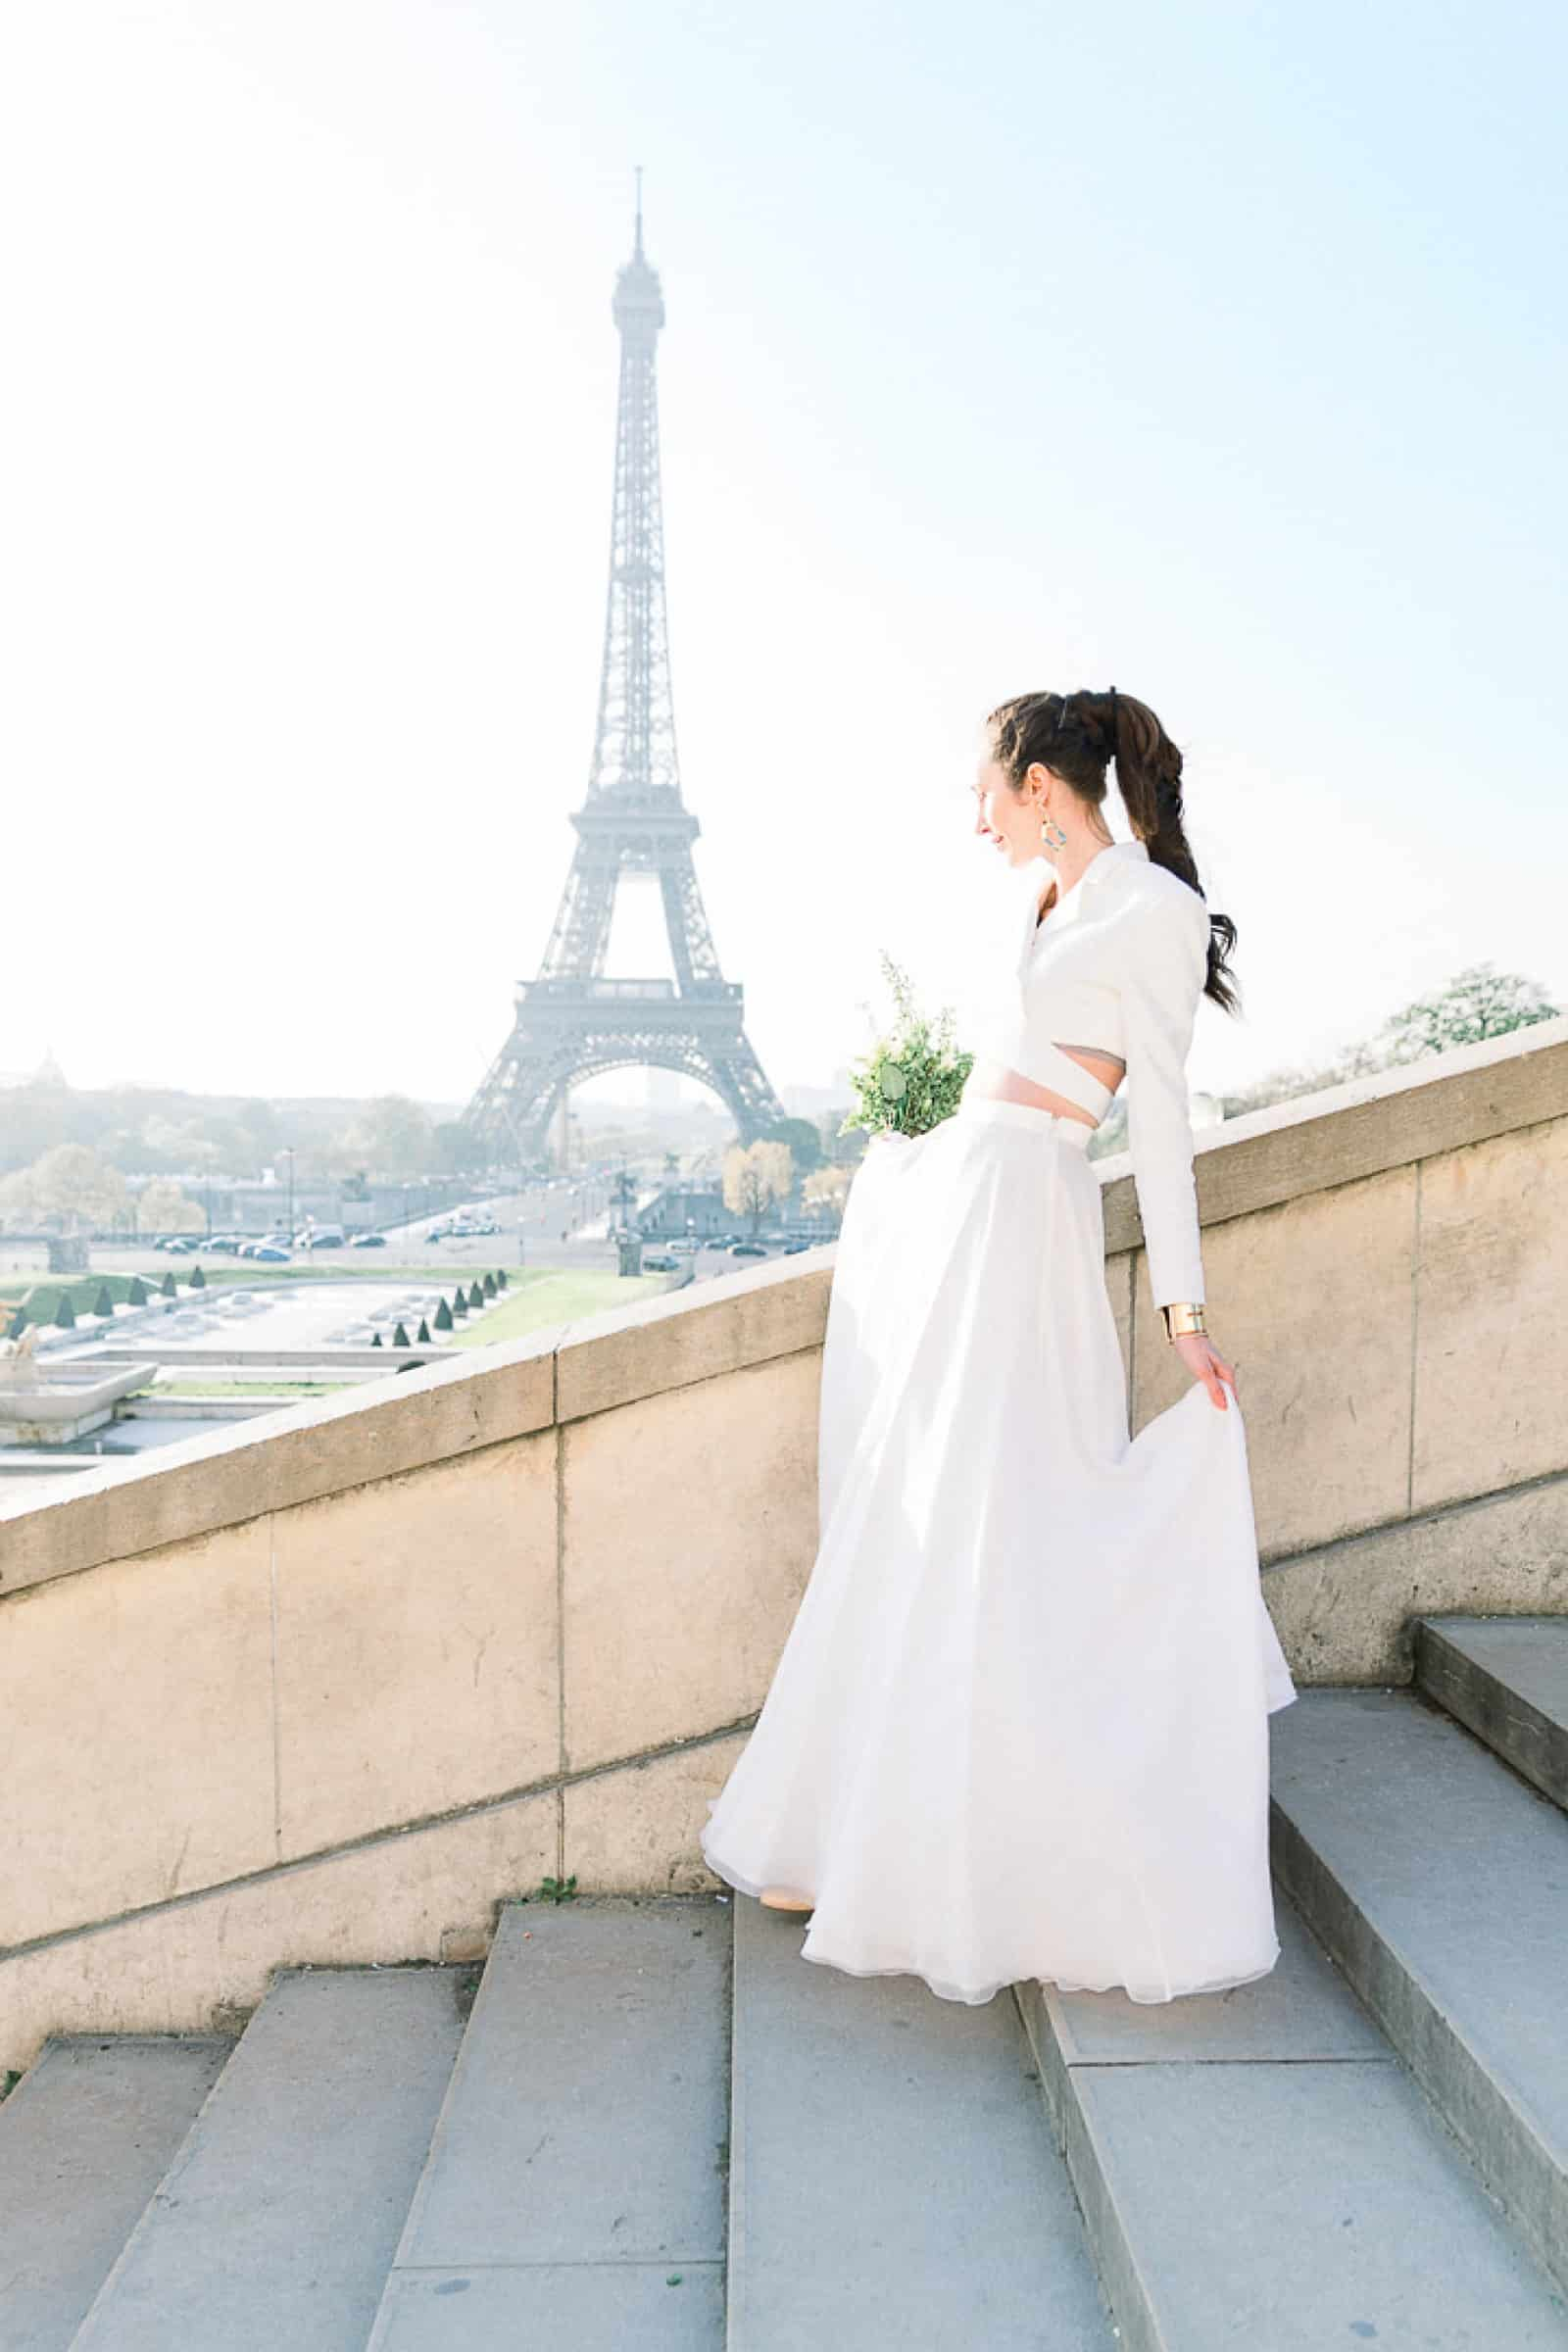 Modern Bride in Paris, France with Eiffel Tower